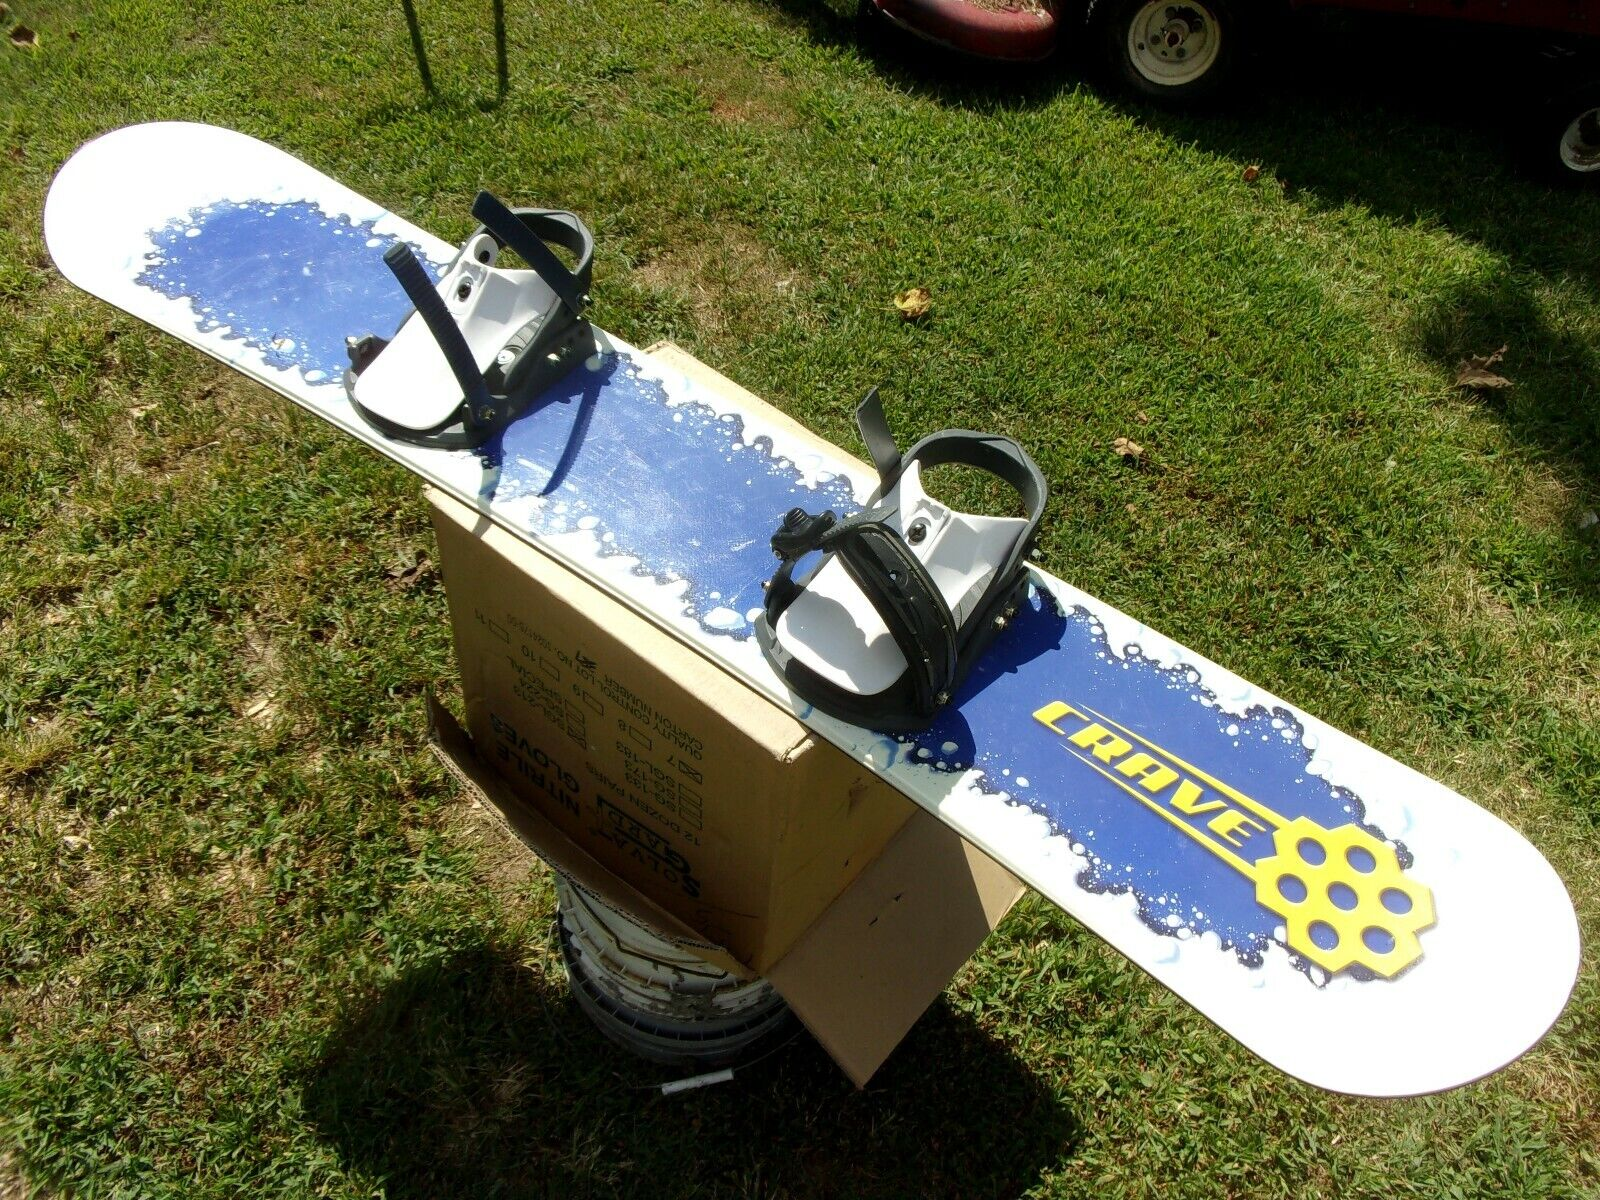 Vtg Built Honeycomb Cereal Crave Snowboard Rare Design Box Prize Crazy Craving